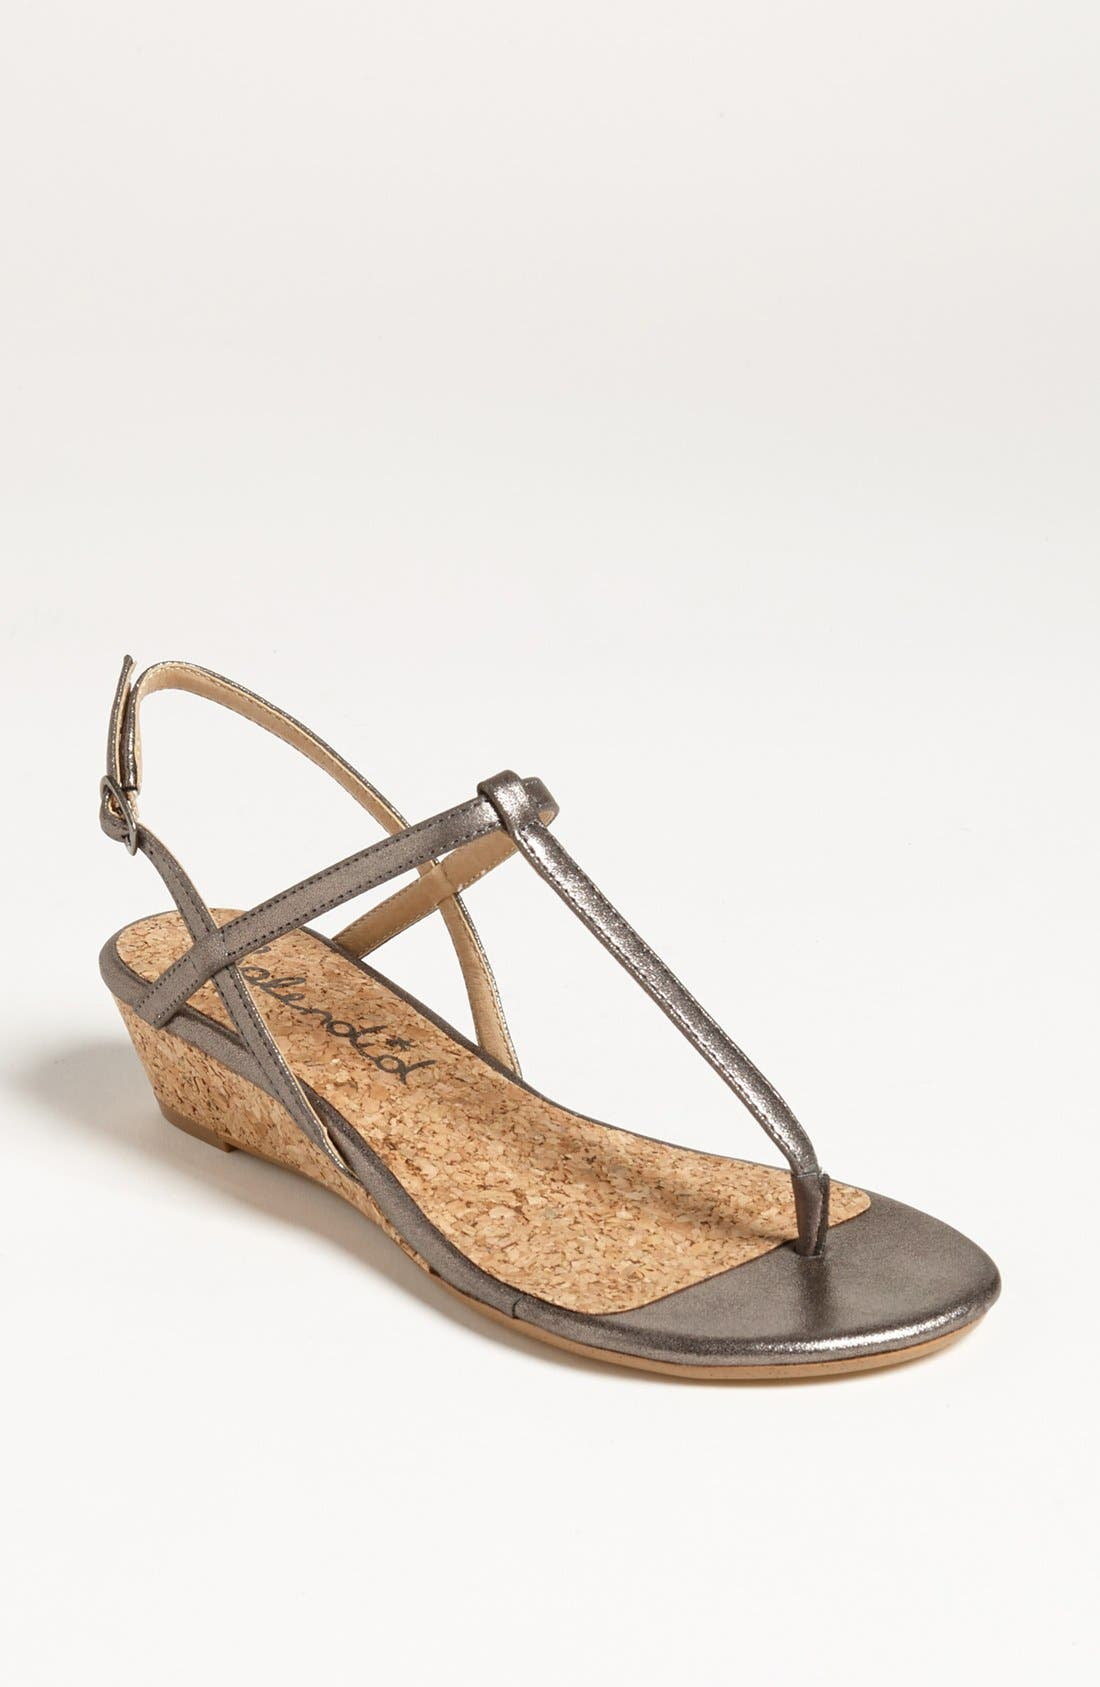 Alternate Image 1 Selected - Splendid 'Edgewood' Sandal